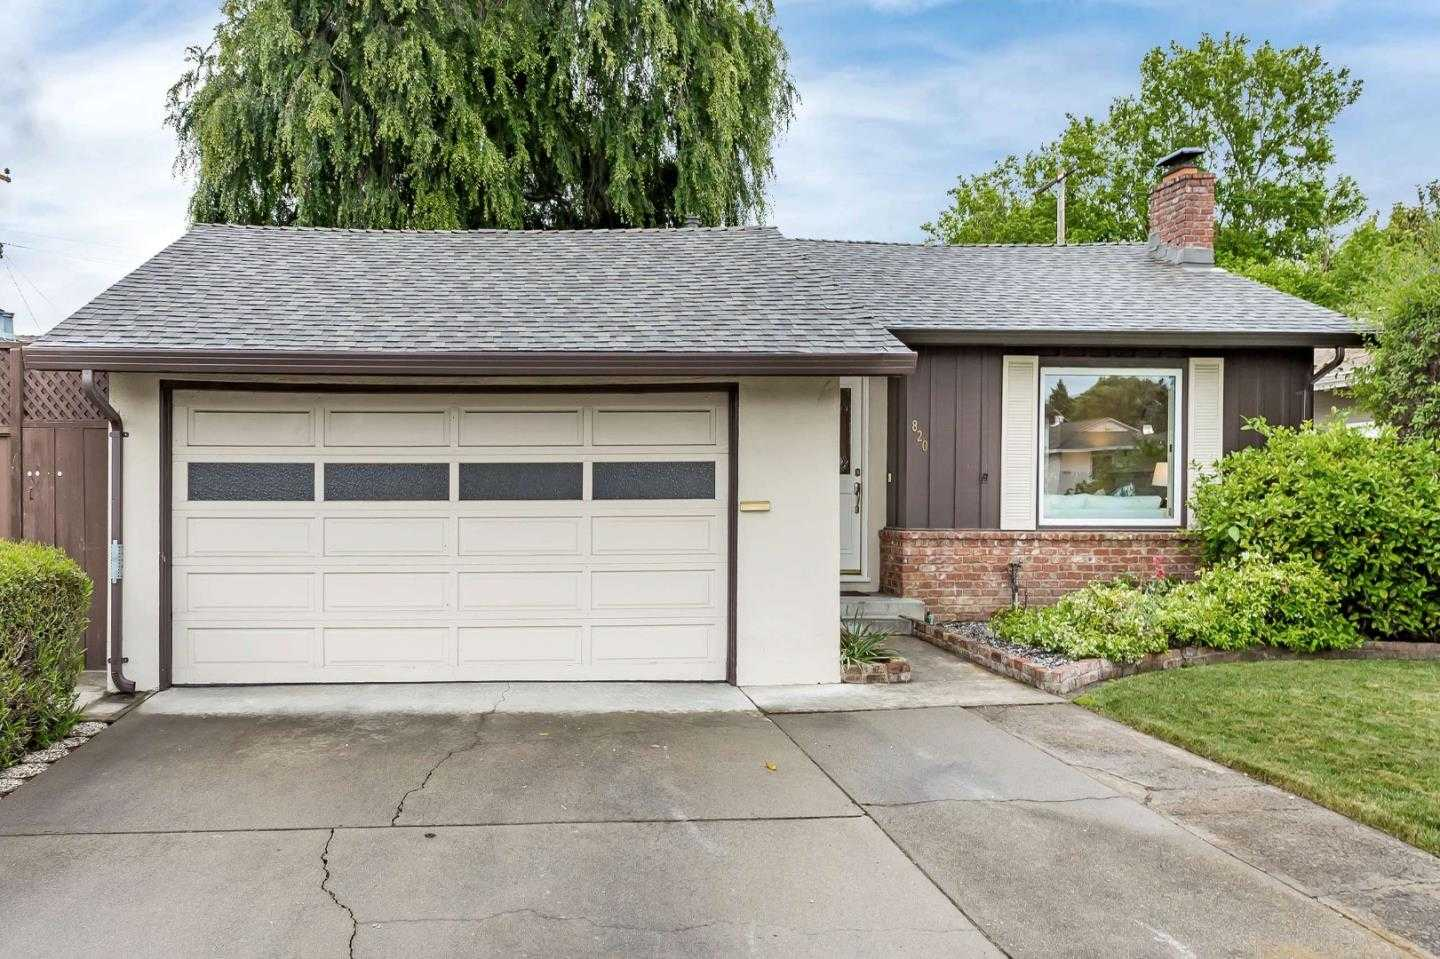 $1,699,950 - 3Br/2Ba -  for Sale in Sunnyvale